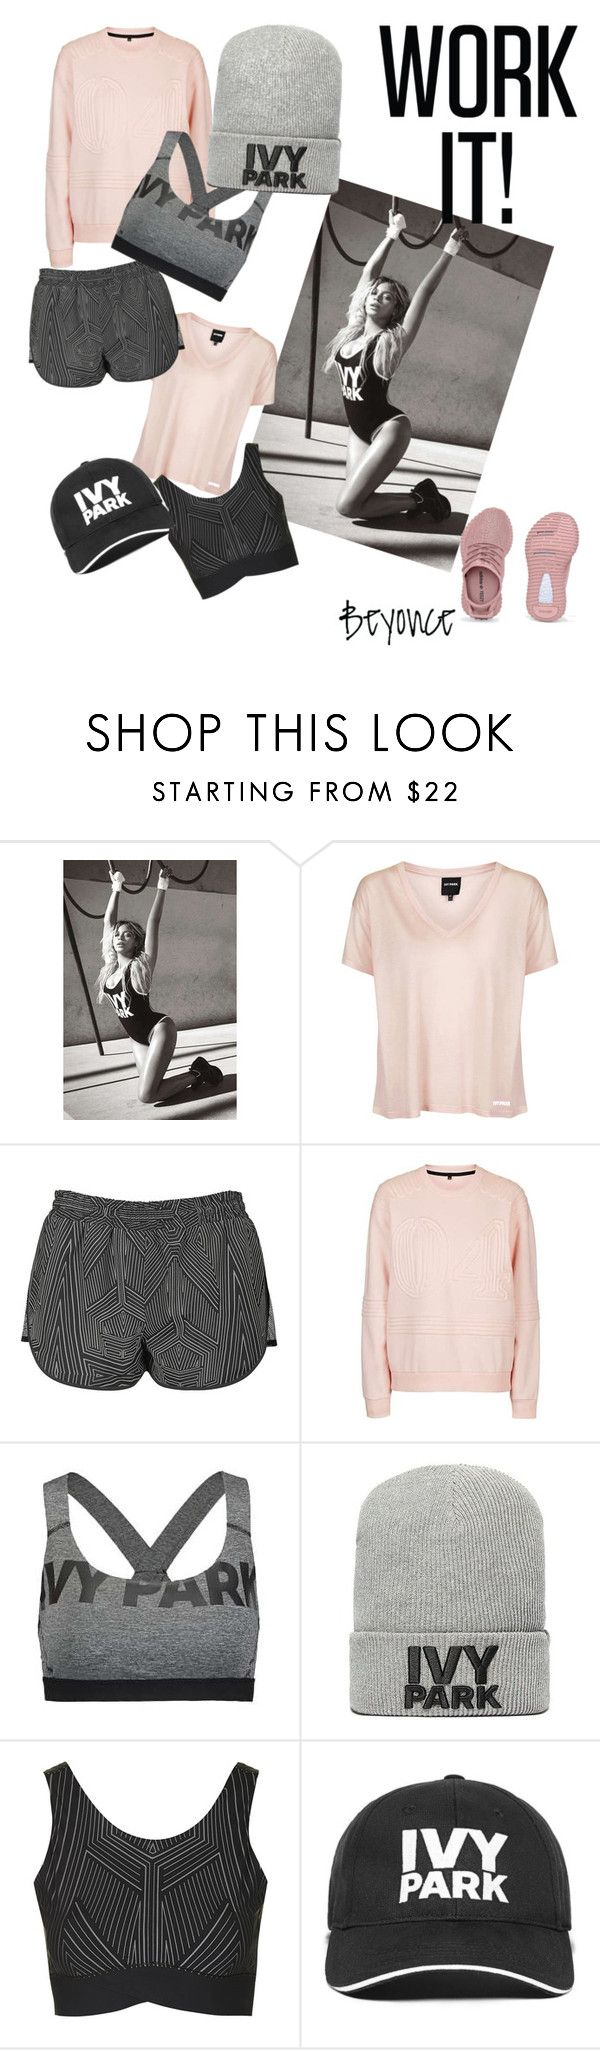 25 Best Ideas About Ivy Park On Pinterest Beyonce